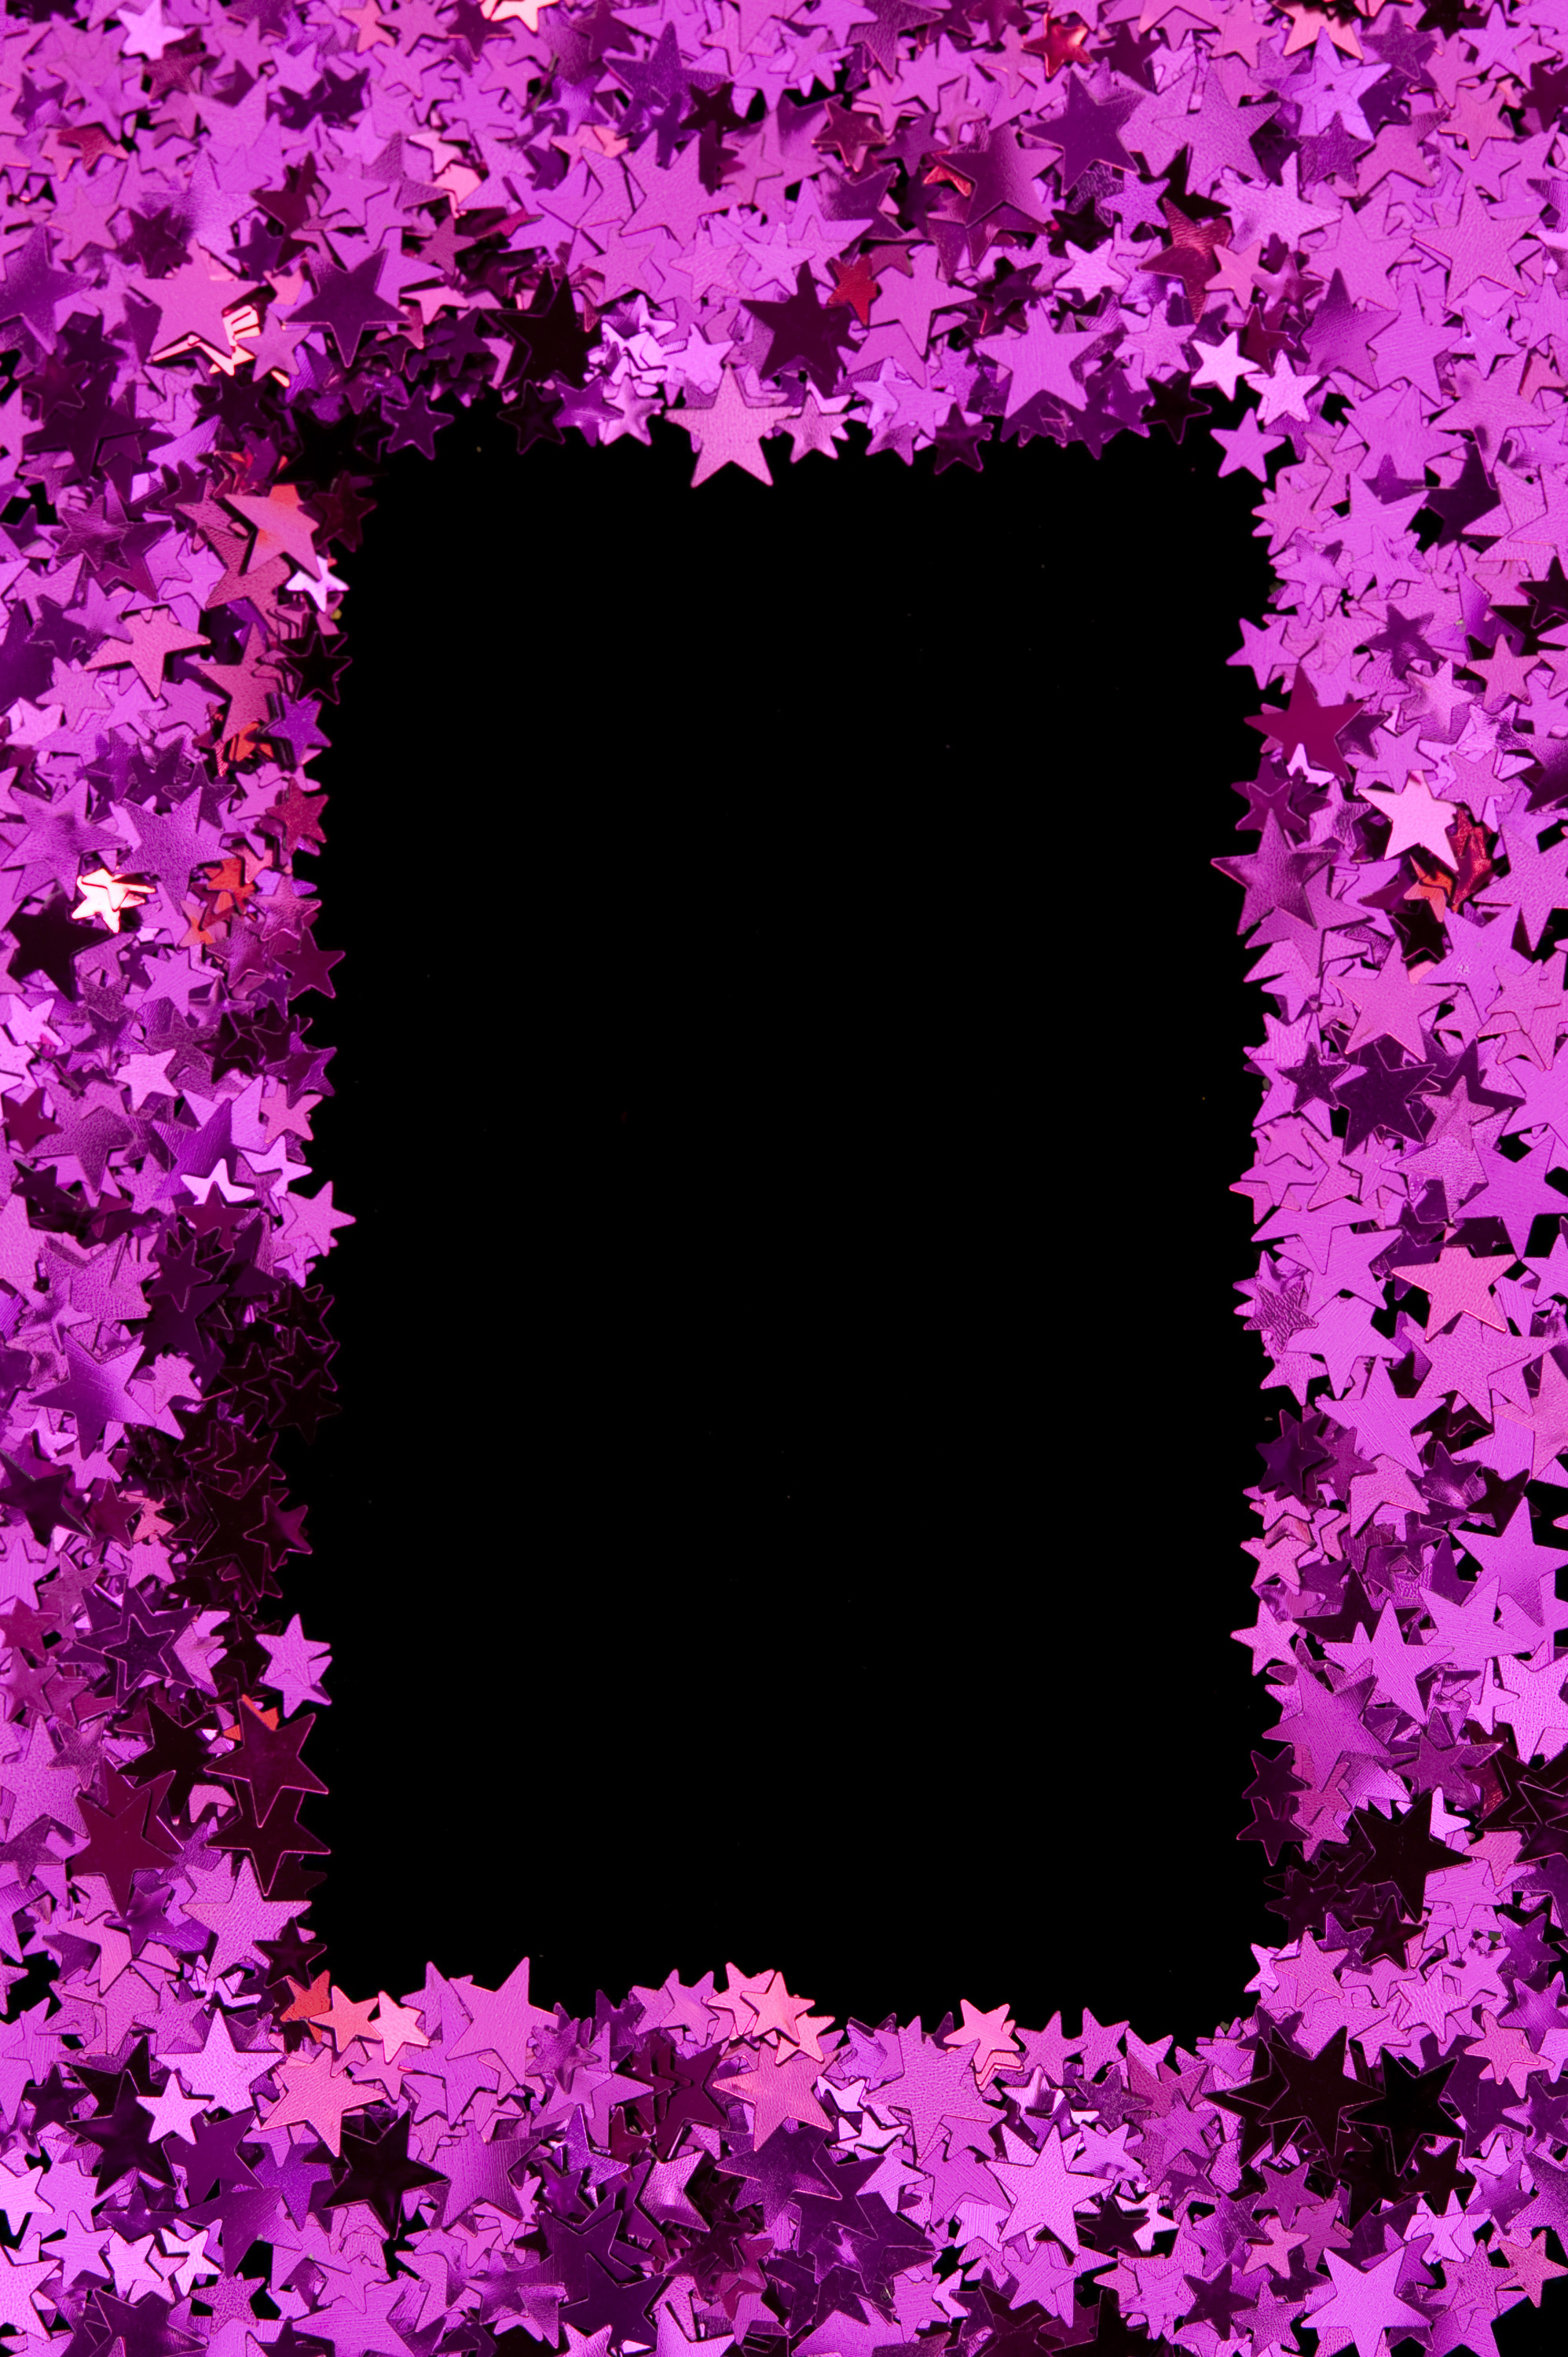 a border of magenta pink stars to composite as a picture frame or add text